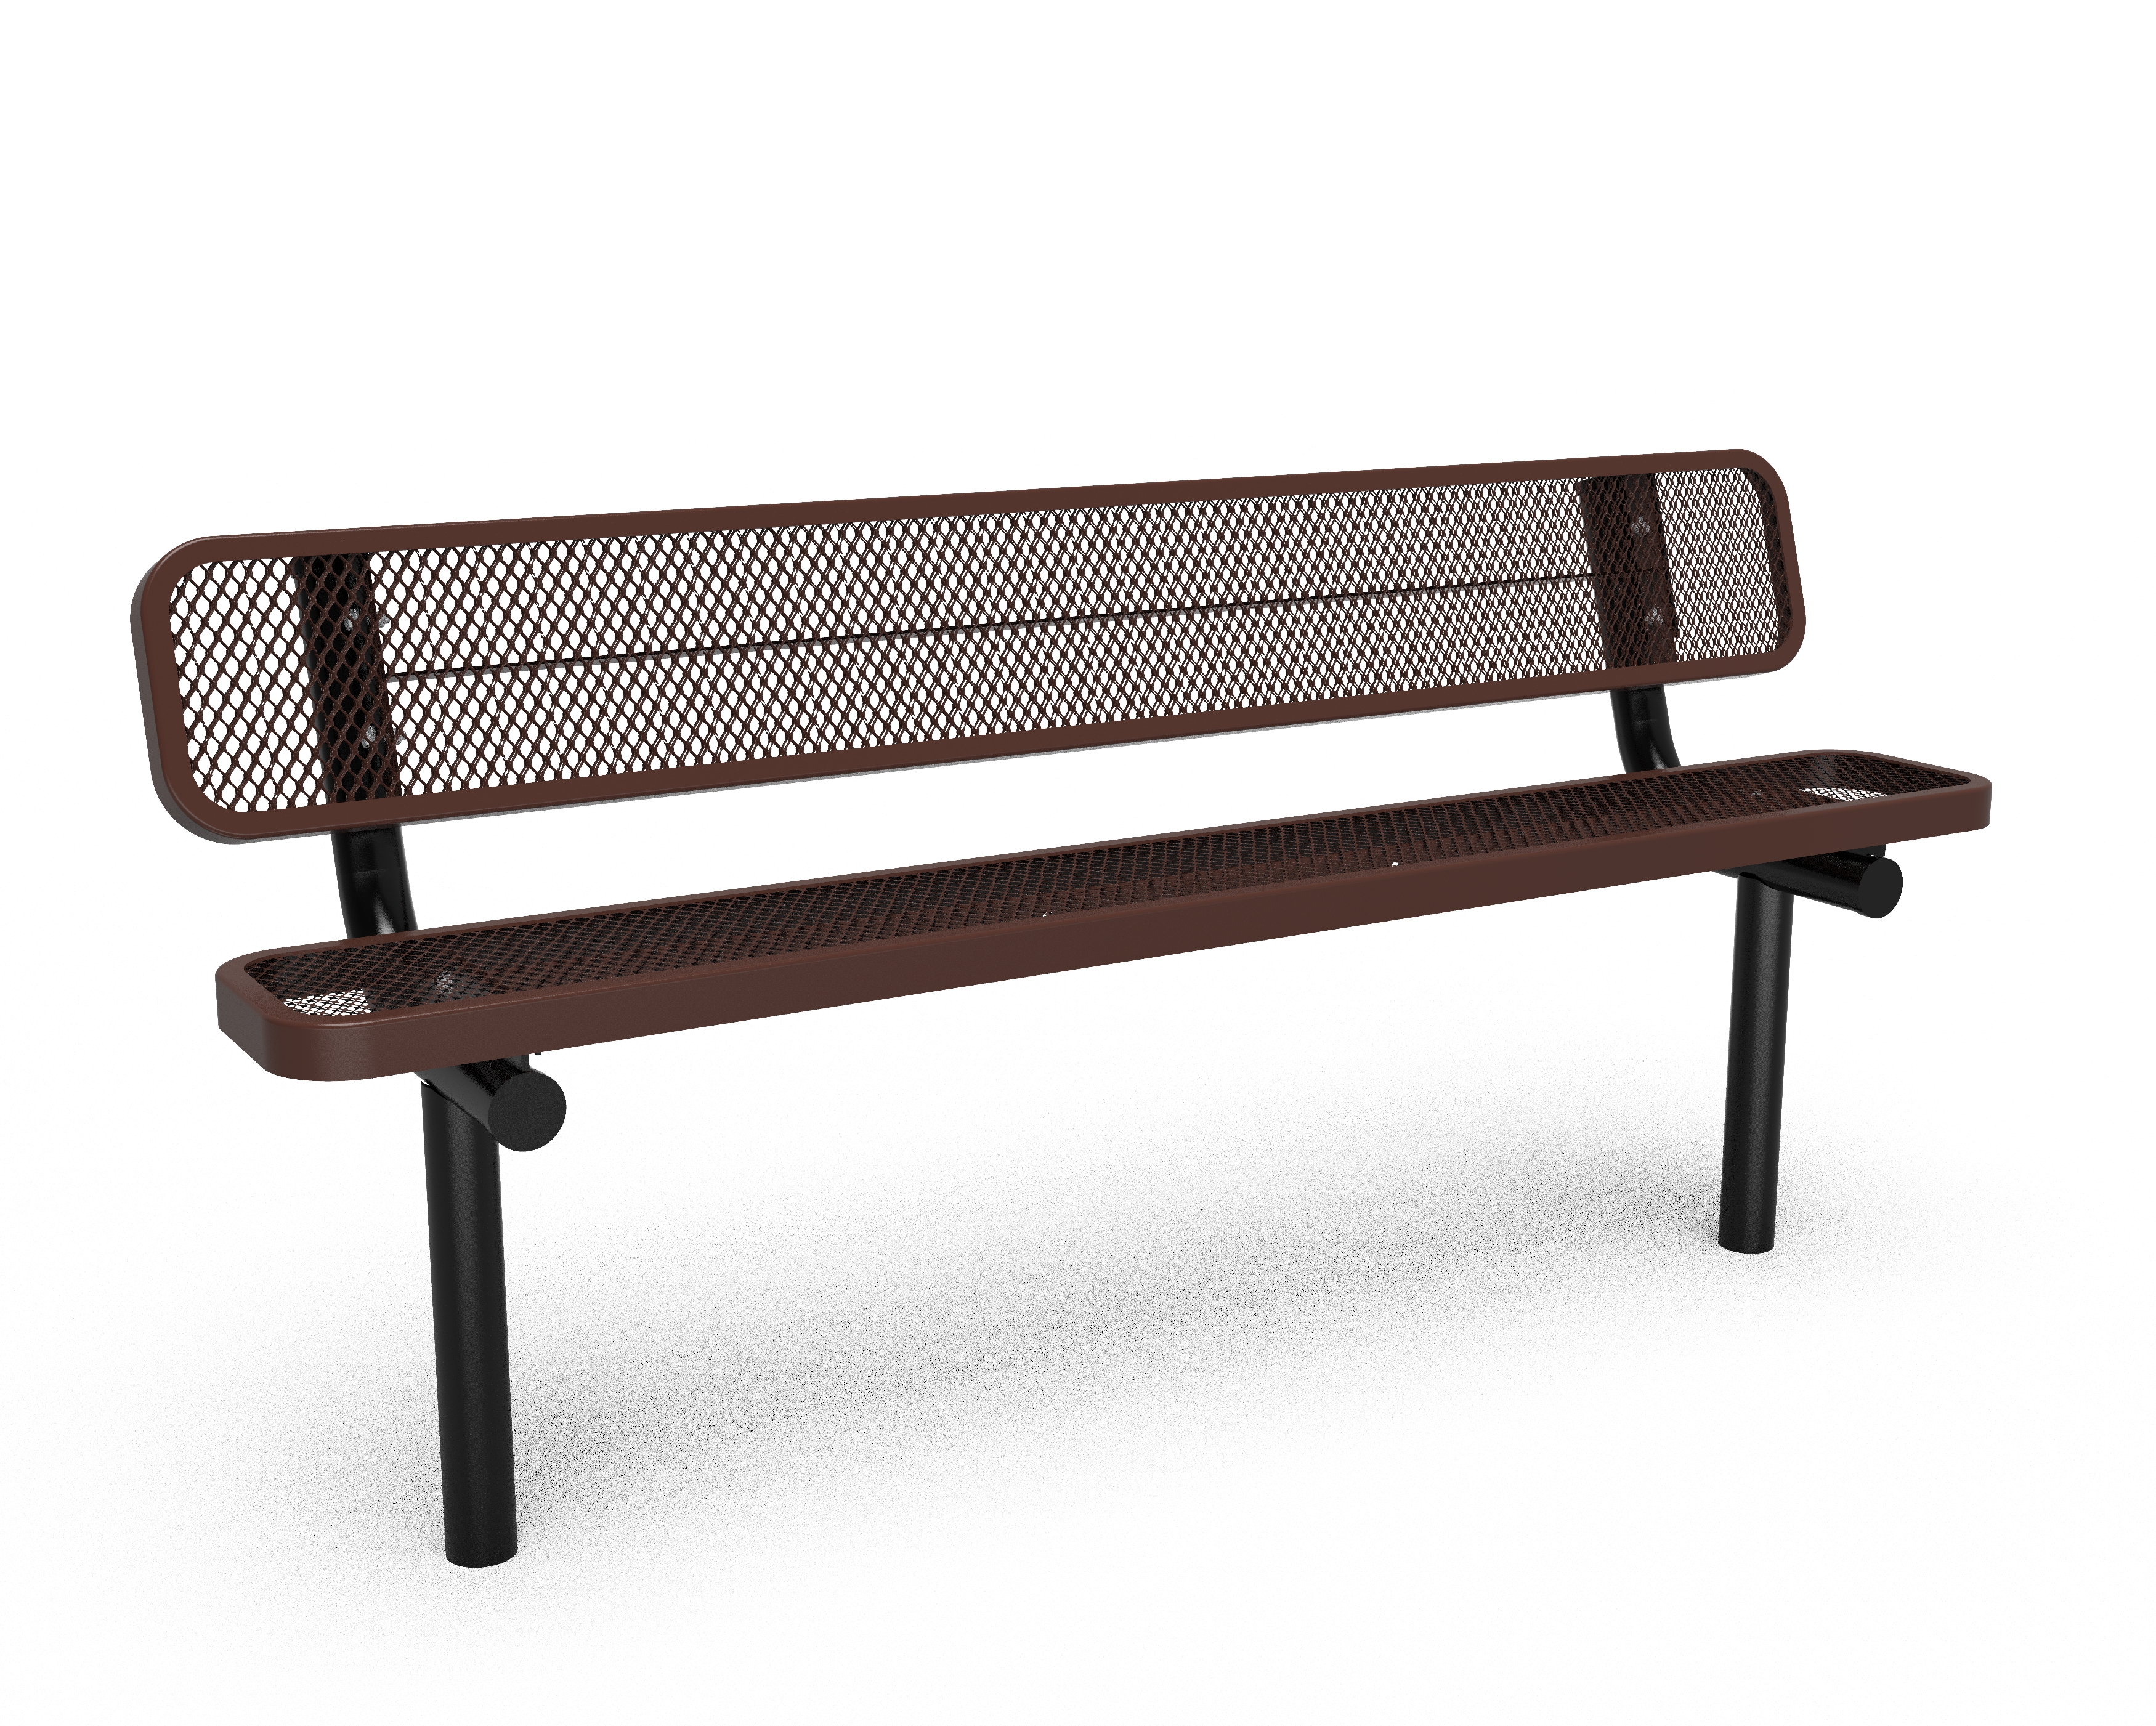 6' Buddy Bench with Back -Perforated - In-ground - Brown (MRSG303DBRW)